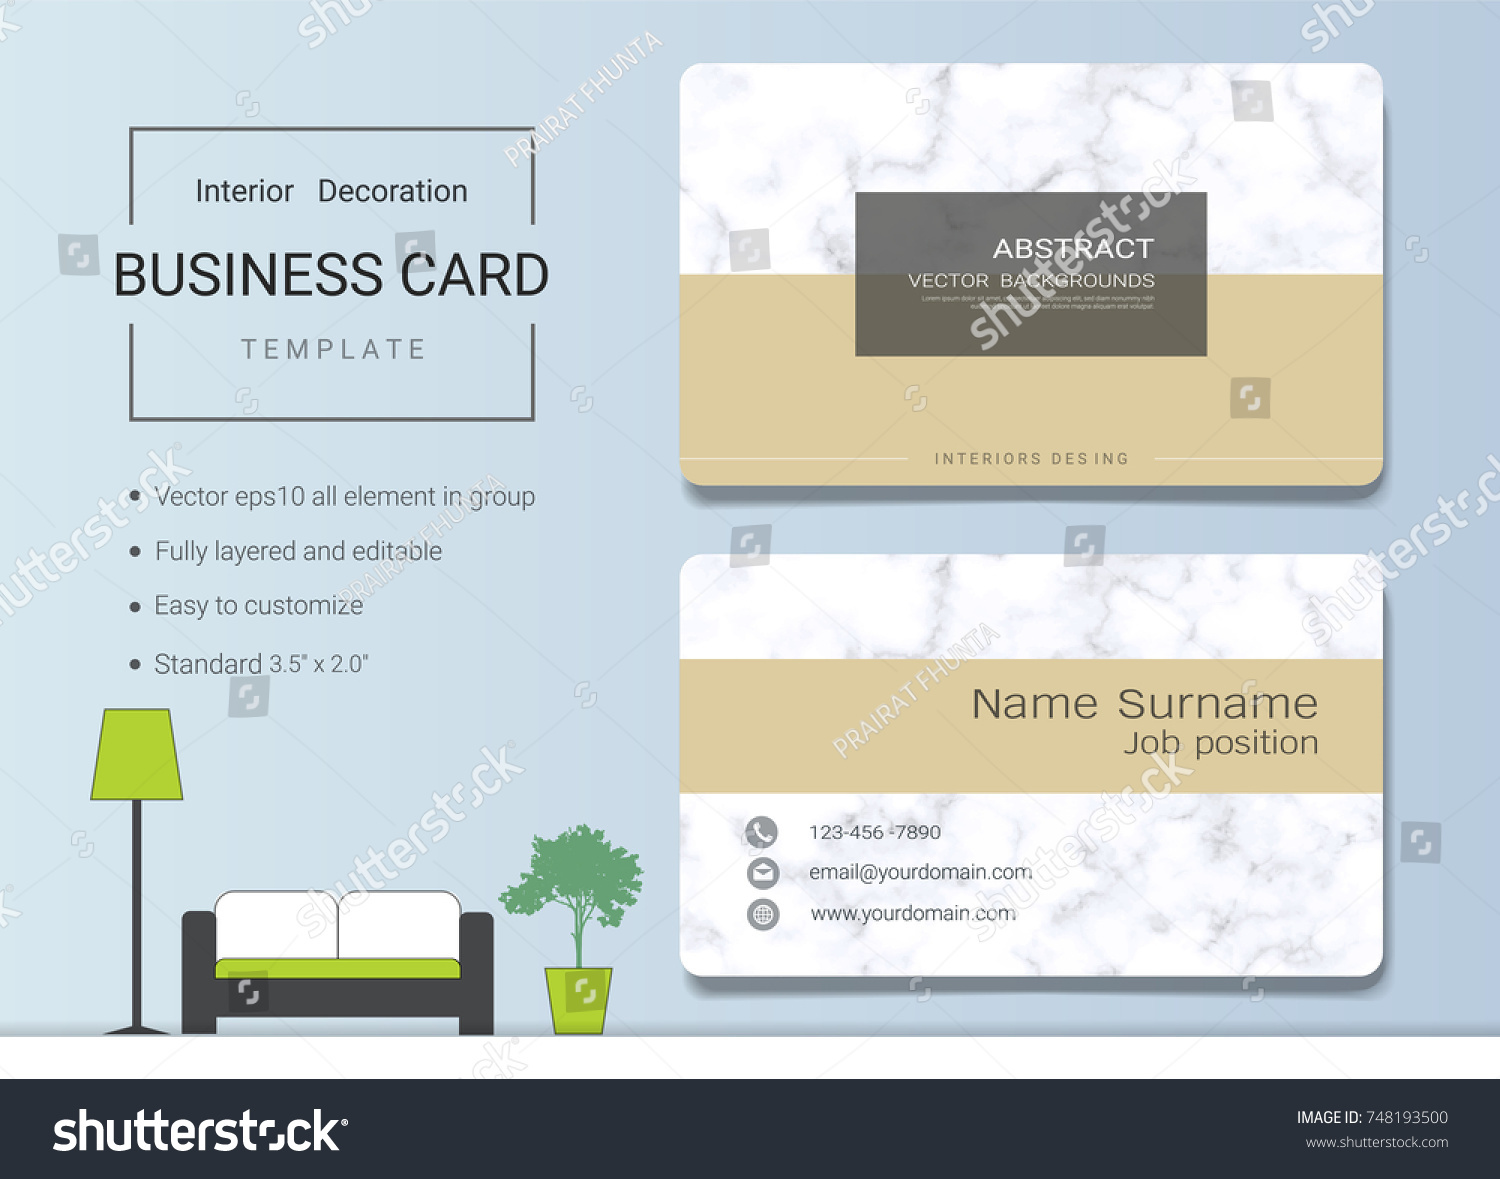 Business name card template interior designer stock vector business name card template for interior designer modern and elegant style with marbling texture imitation reheart Choice Image